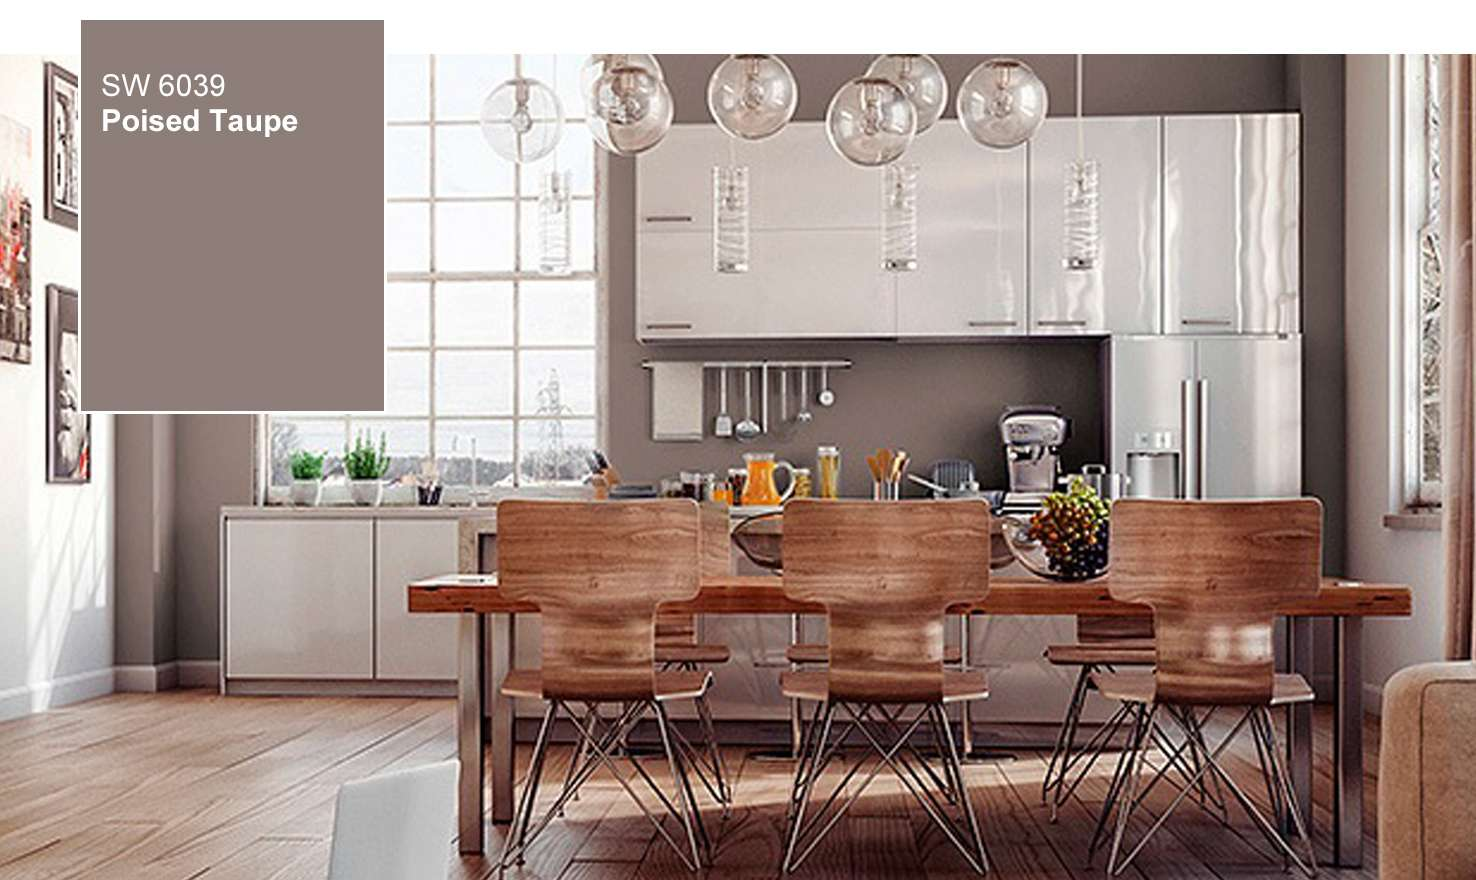 top luxury home trends for 2017 part 1 silicon valley and beyond 4 taupe overtaking gray